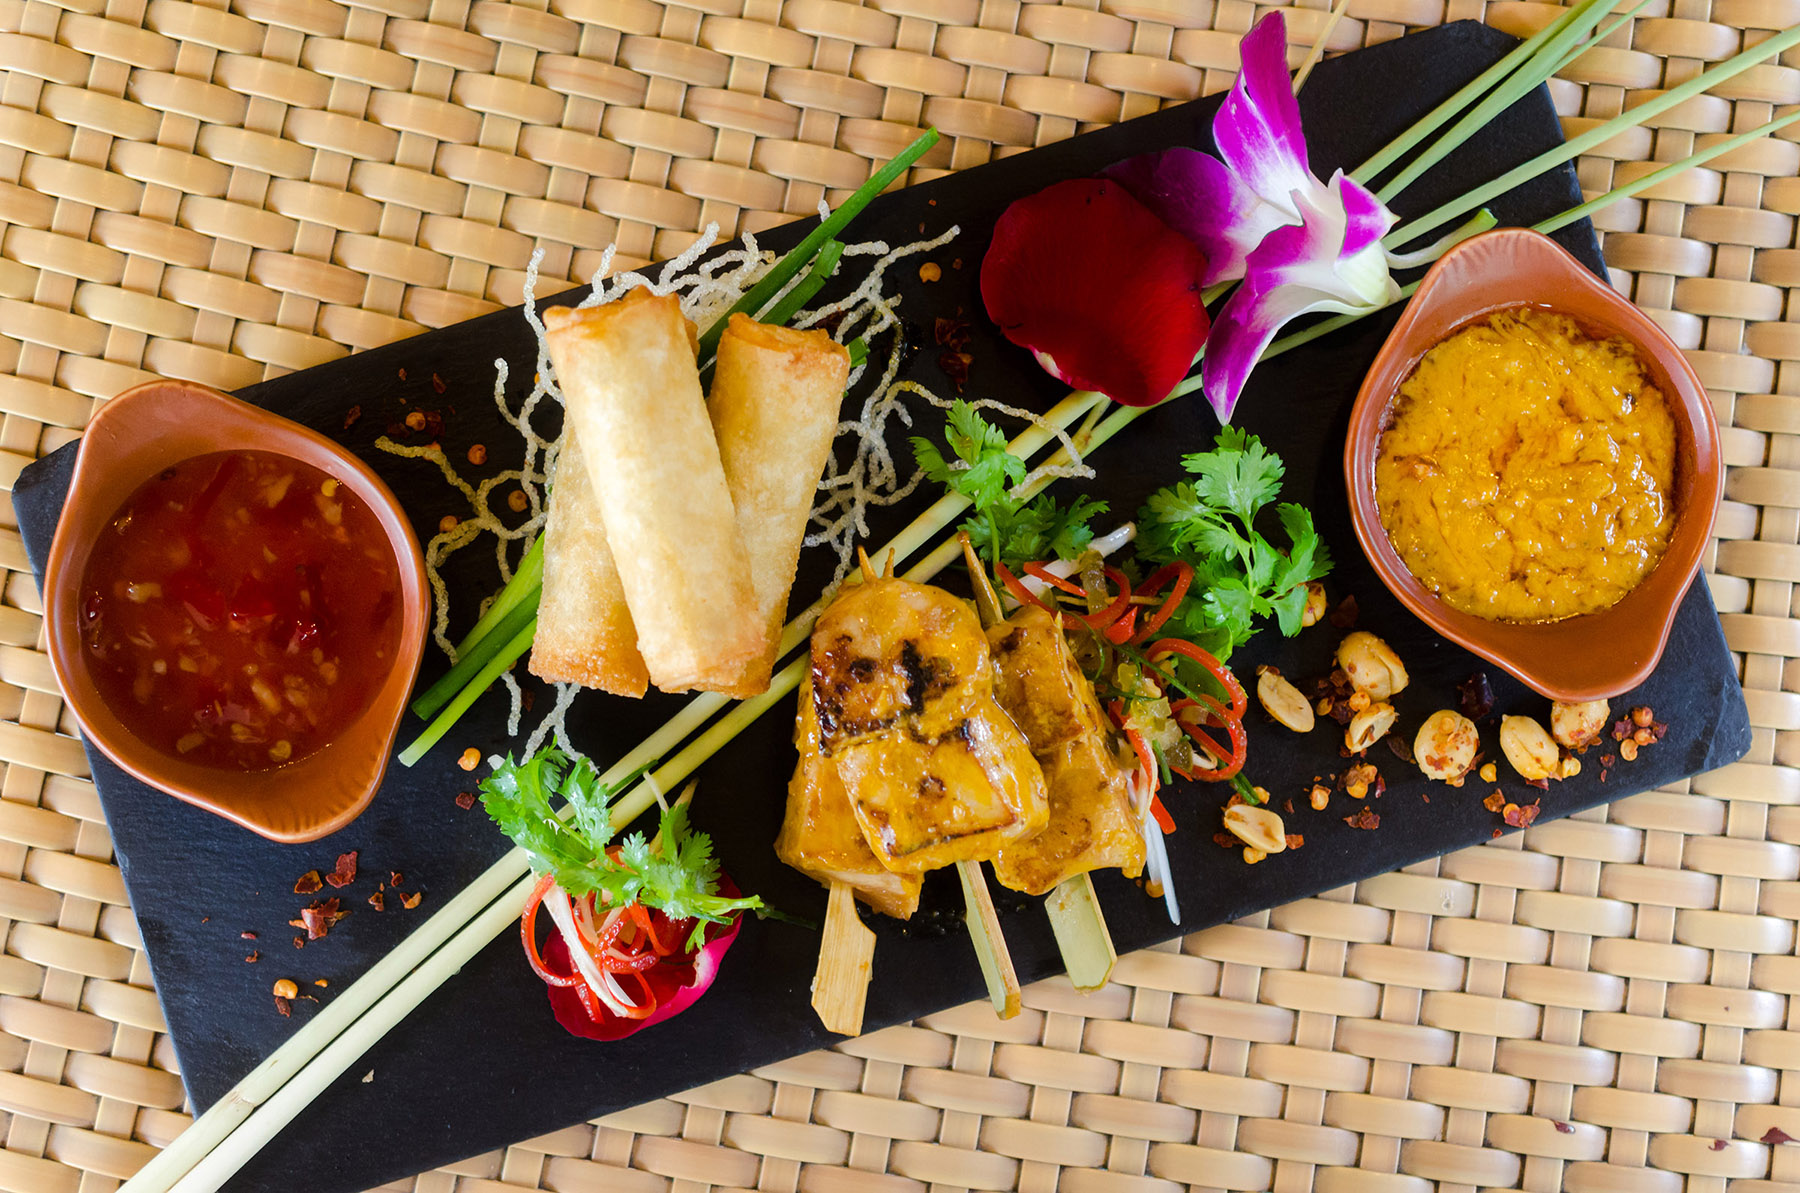 Edsa Shangri-La, Manila's executive chef, Scott Brands prepared Chicken satay skewers with peanut sa